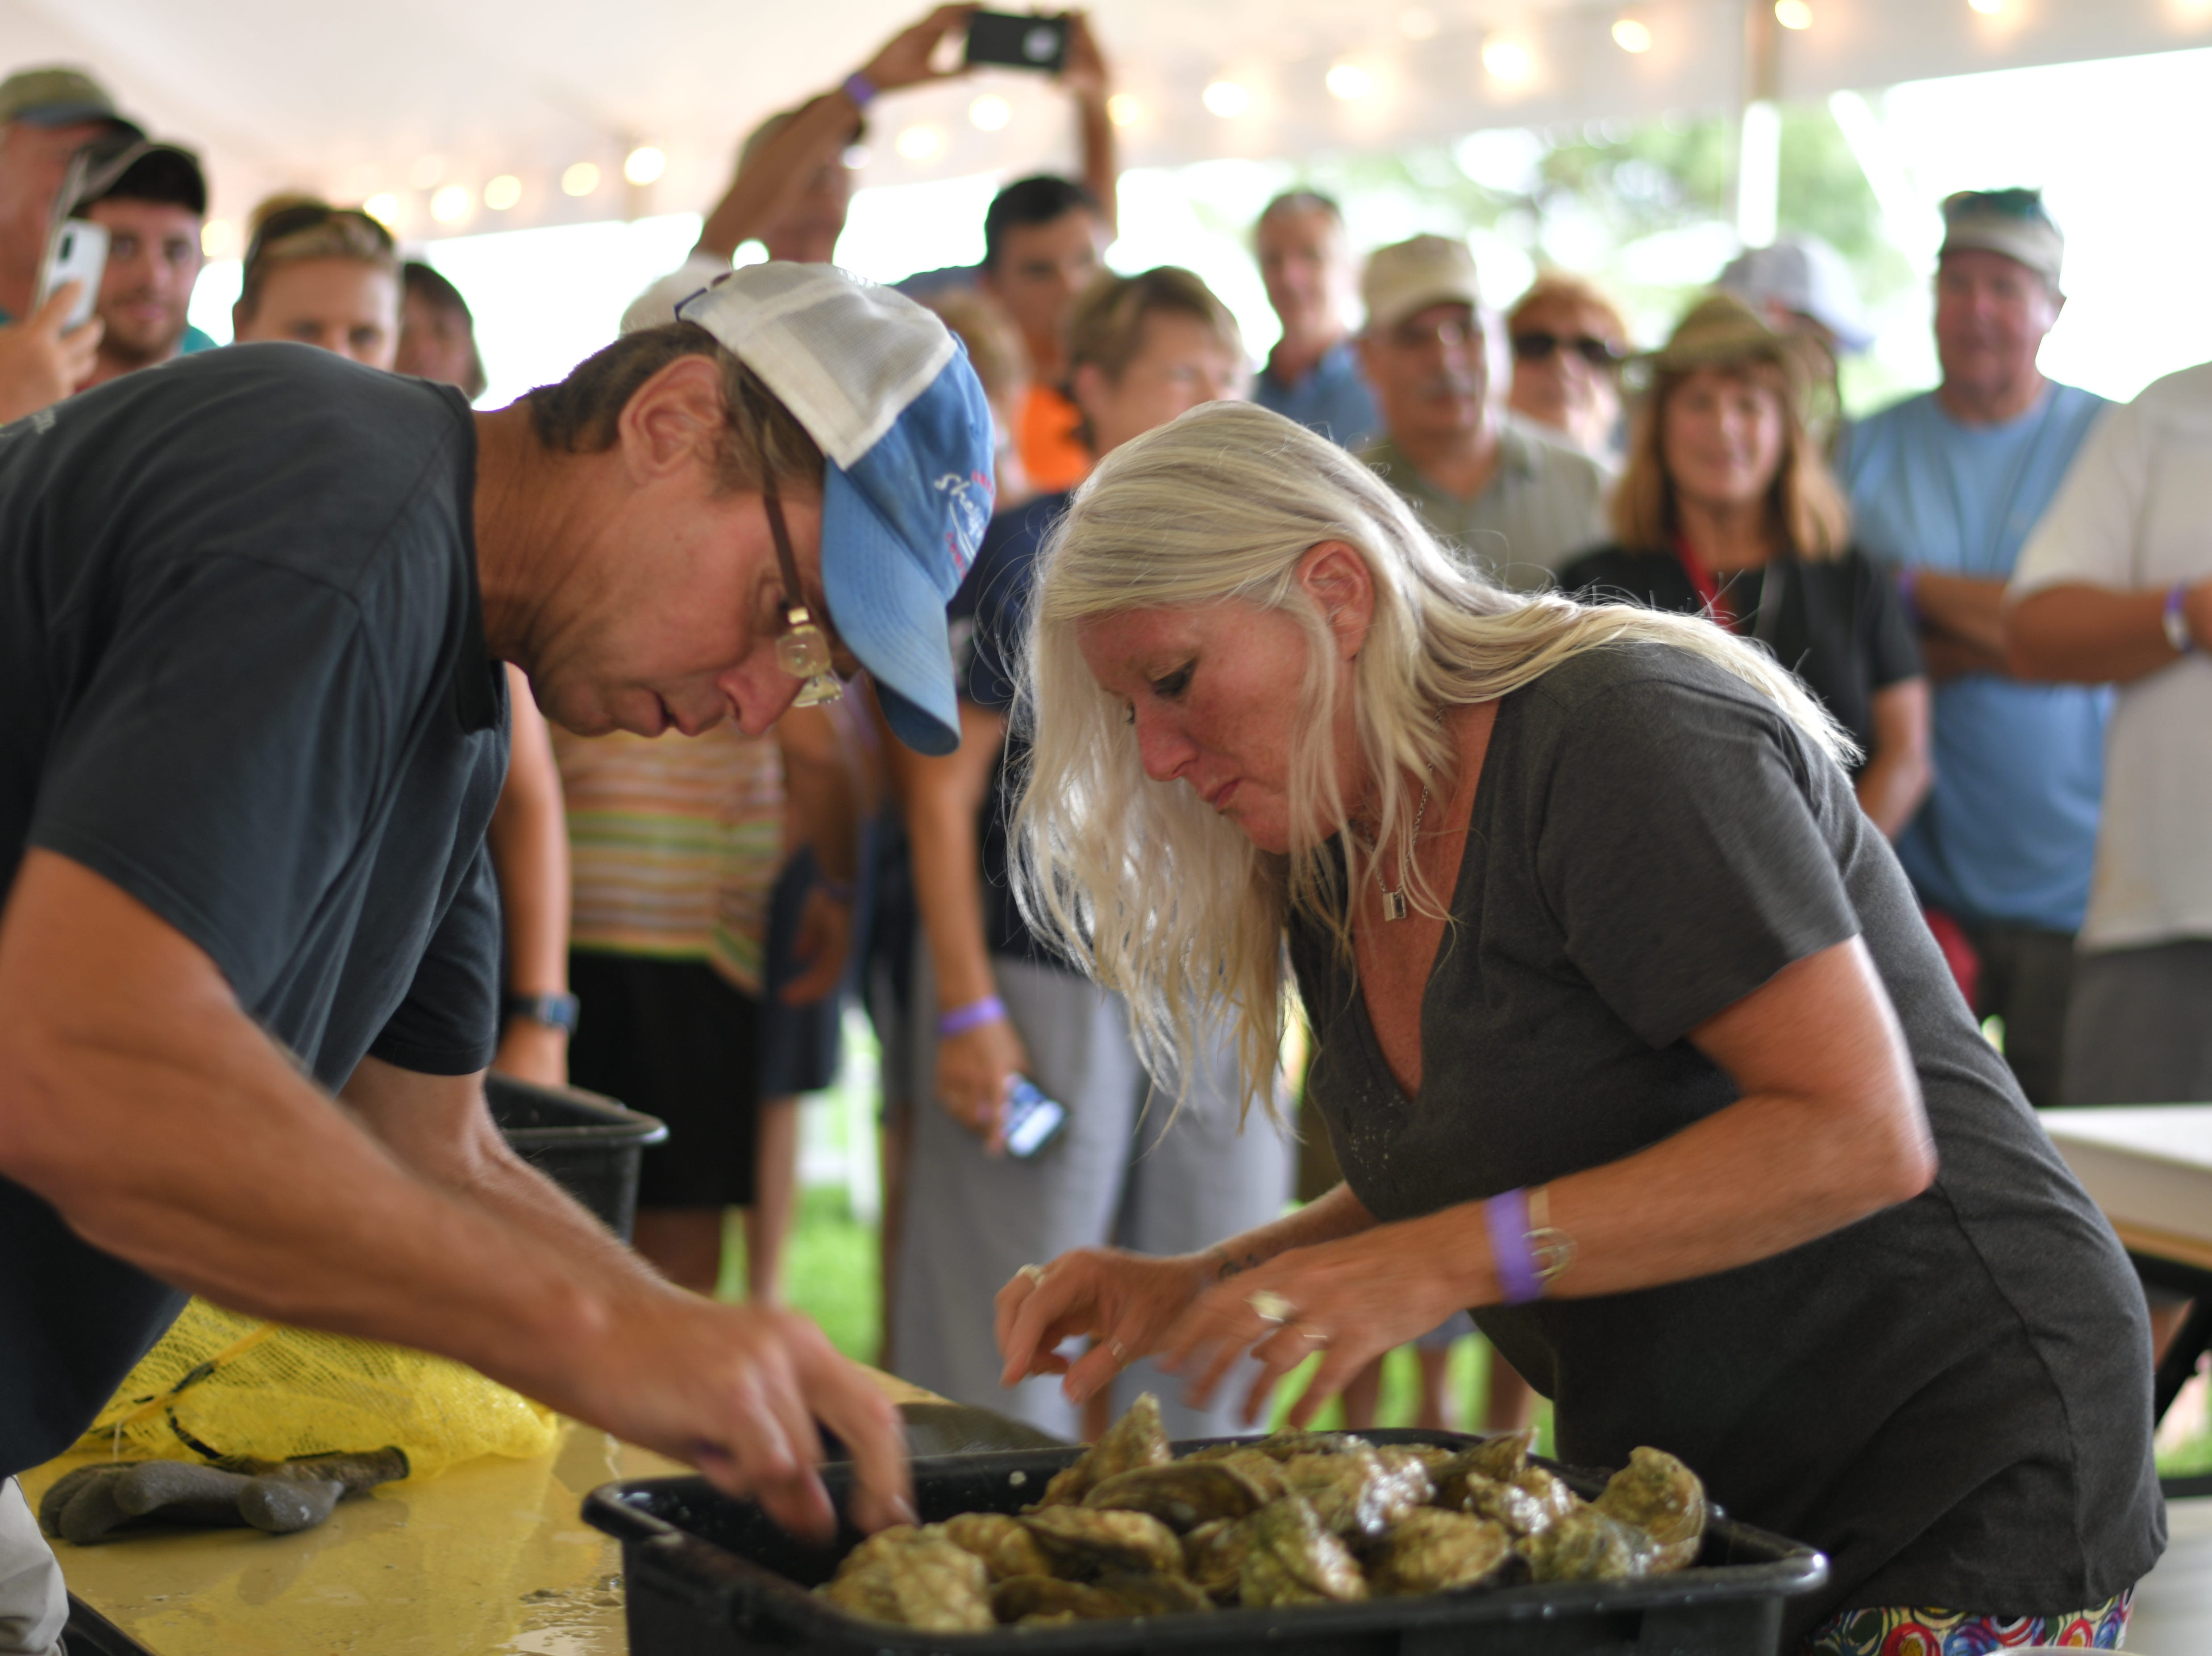 Joe Peirson and Sally Lewin won second place after shucking and eating 102 raw oysters at the 3rd Annual Oyster Eating Contest on Friday, Aug. 3, at Oyster Farm at King's Creek in Cape Charles.